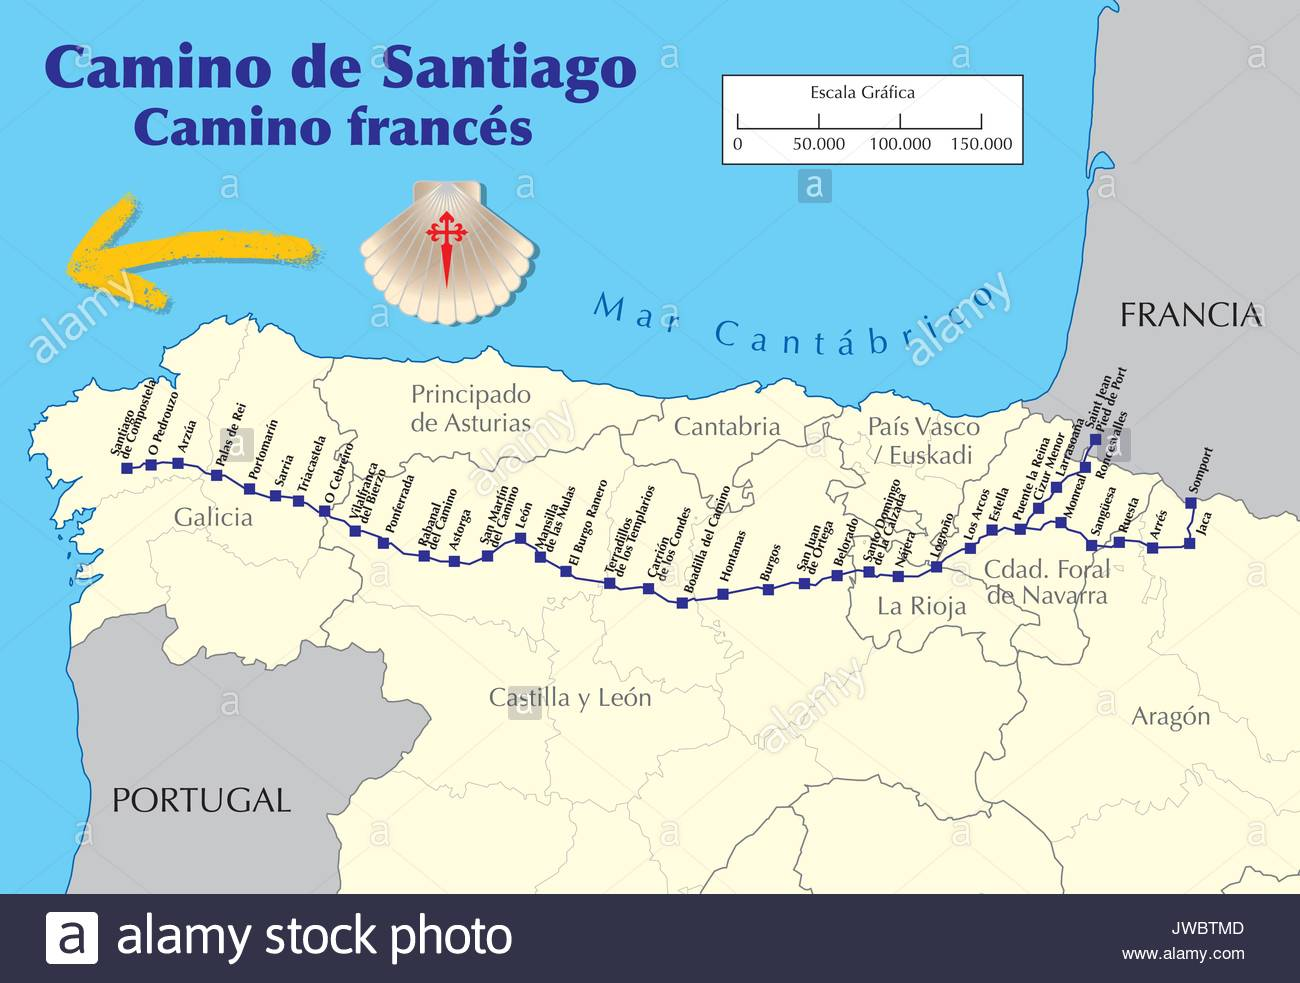 Mapa Caminos De Santiago.Map Of Camino De Santiago Map Of Saint James Way With All